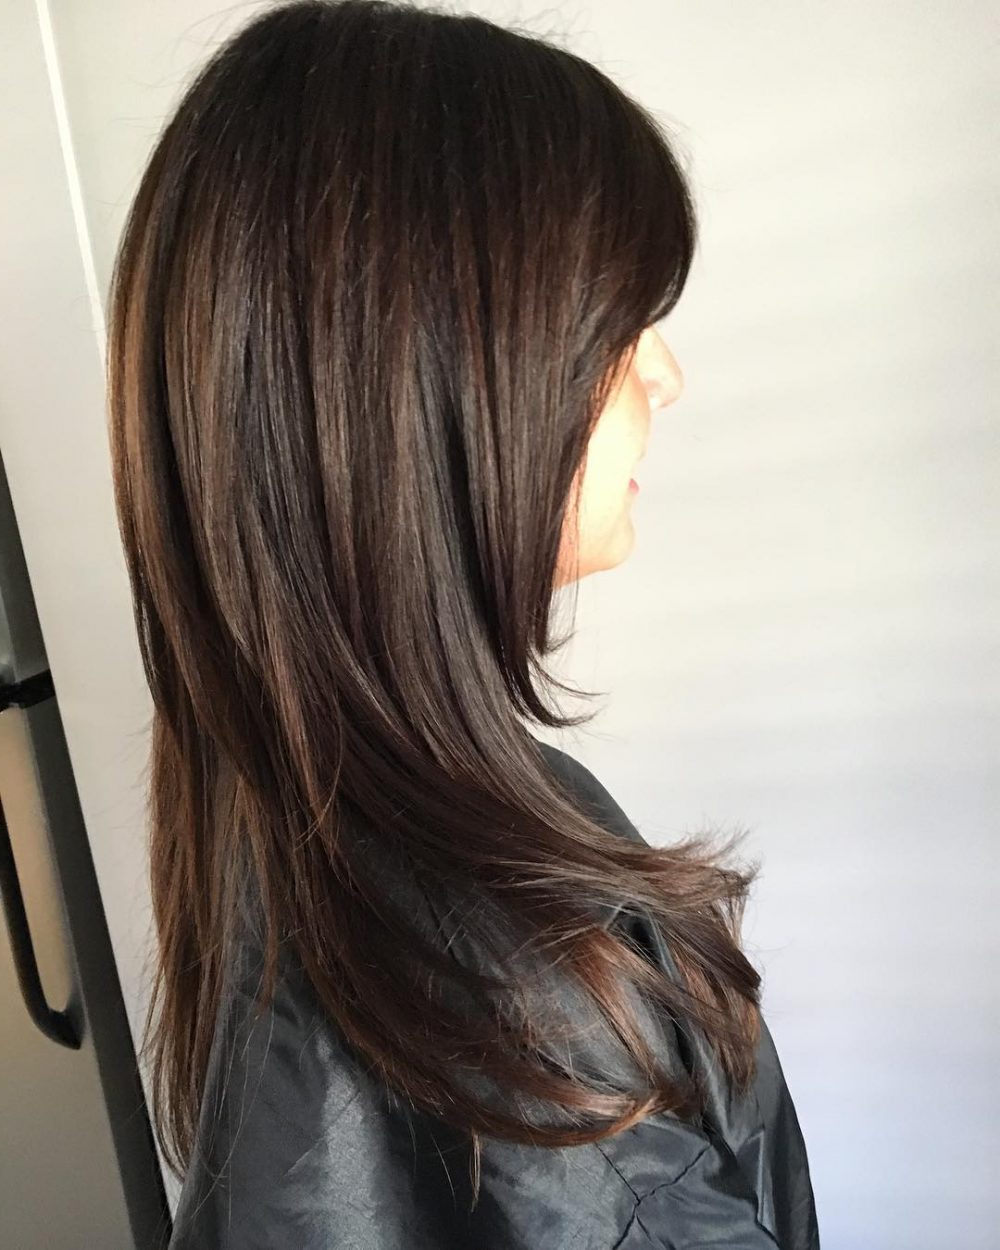 2019 Black And Brown Layered Haircuts For Long Hair Regarding 120 Flattering Hairstyles For Straight Hair That Everyone Can Pull Off (Gallery 8 of 20)